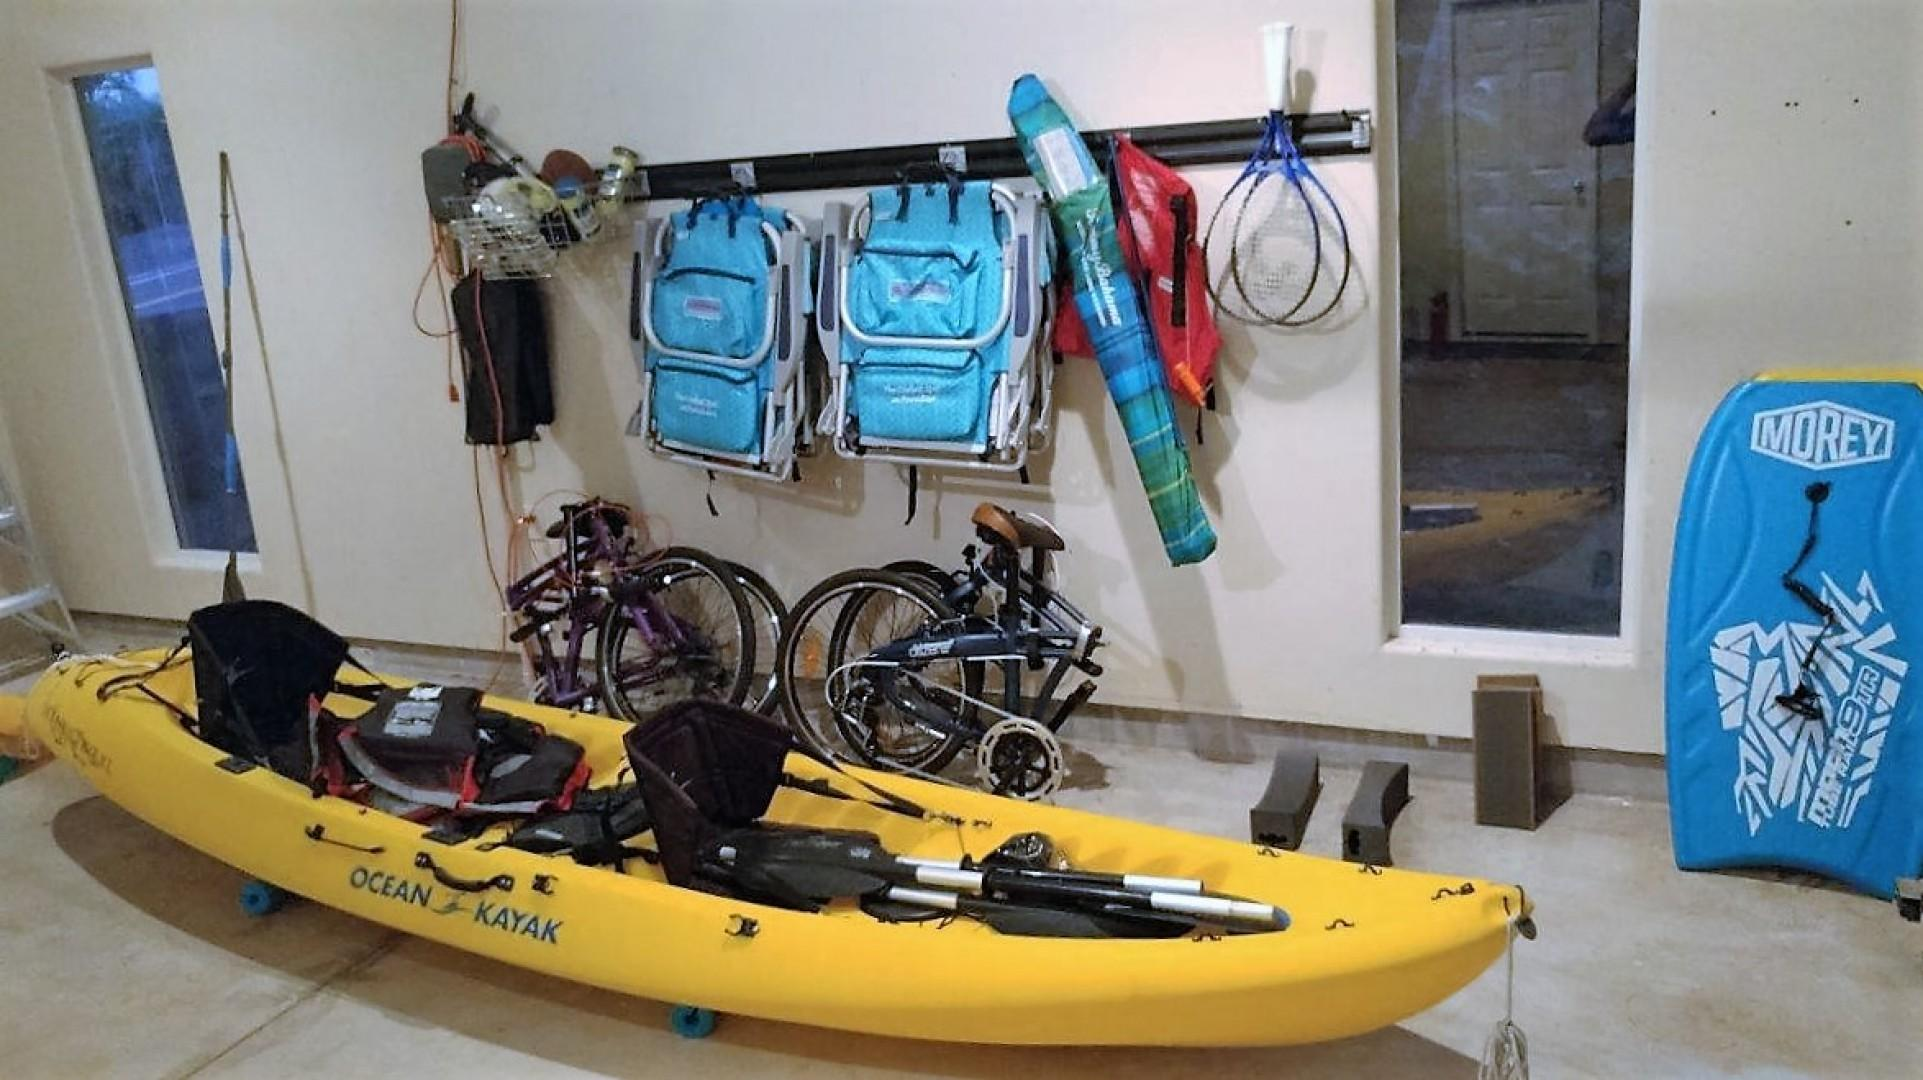 Fun toys to enjoy: two folding bikes (fit great in the car), beach chairs, umbrella, tennis rackets, boogie boards and a two-seat kayak.